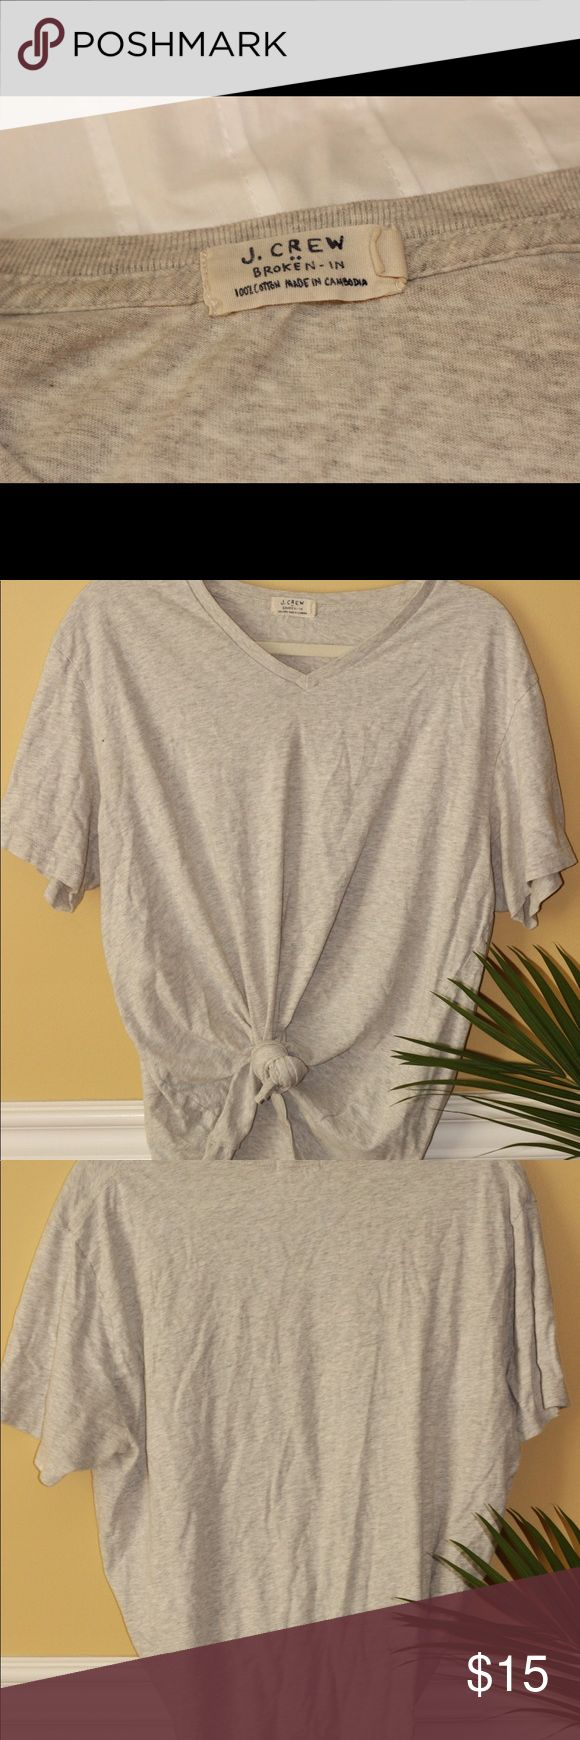 J crew comfy big tee Super soft and cozy j crew t 👚! Doesn't have to be tied in knot J. Crew Tops Tees - Short Sleeve